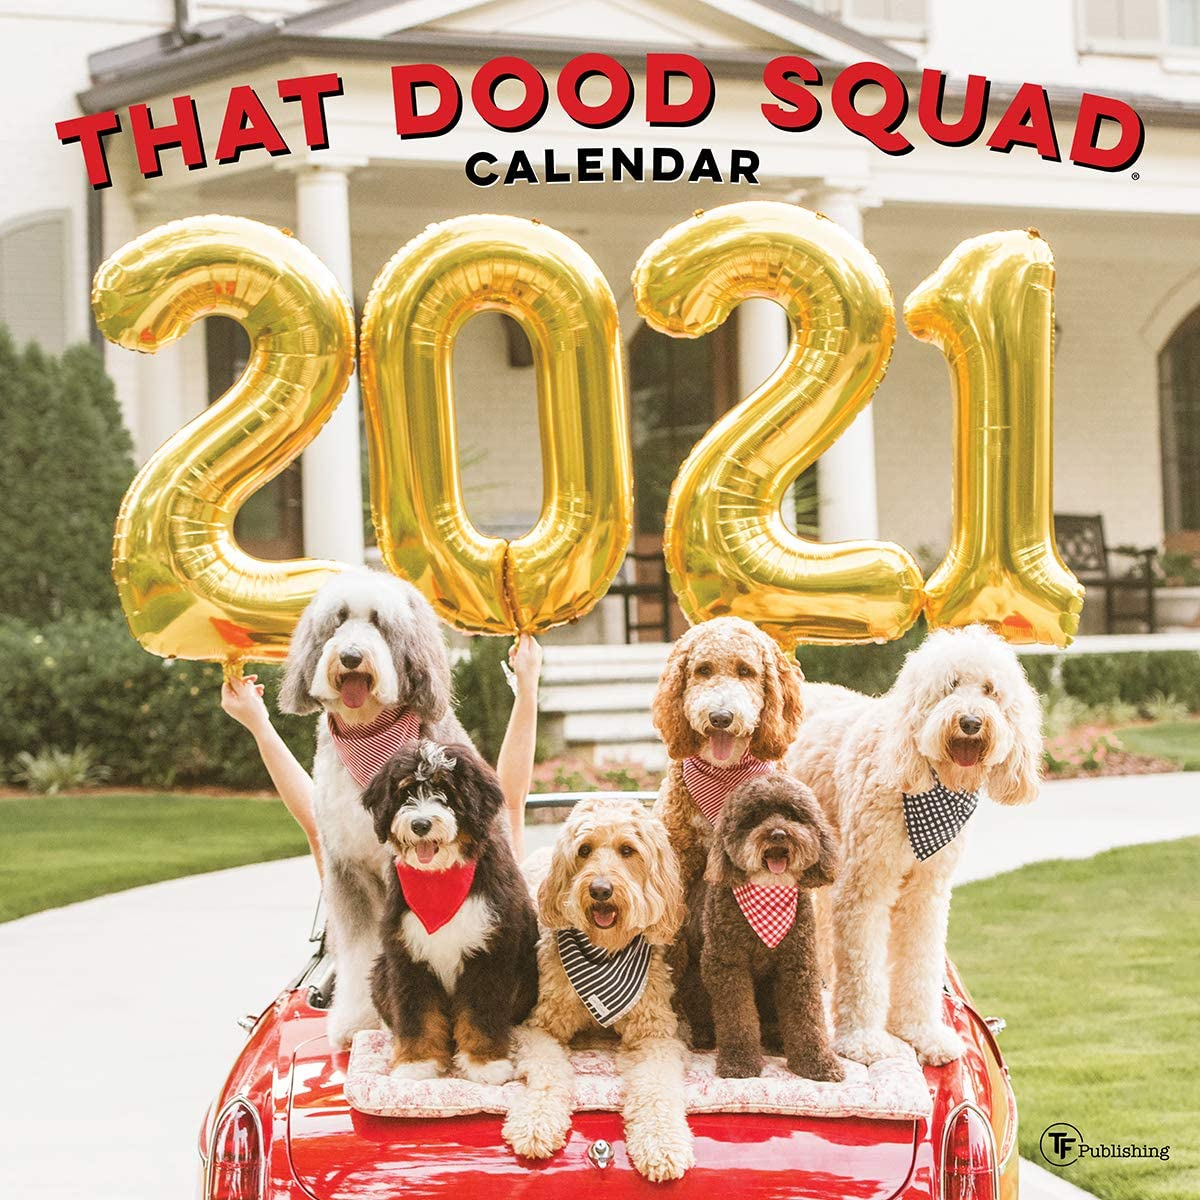 """TF PUBLISHING 2021 The Dood Squad Monthly Wall Calendar - Dog Photography - Appointment Tracker - Contacts and Notes Page - Home or Office Planning/Organization - Premium Gloss Paper 12""""x12"""""""